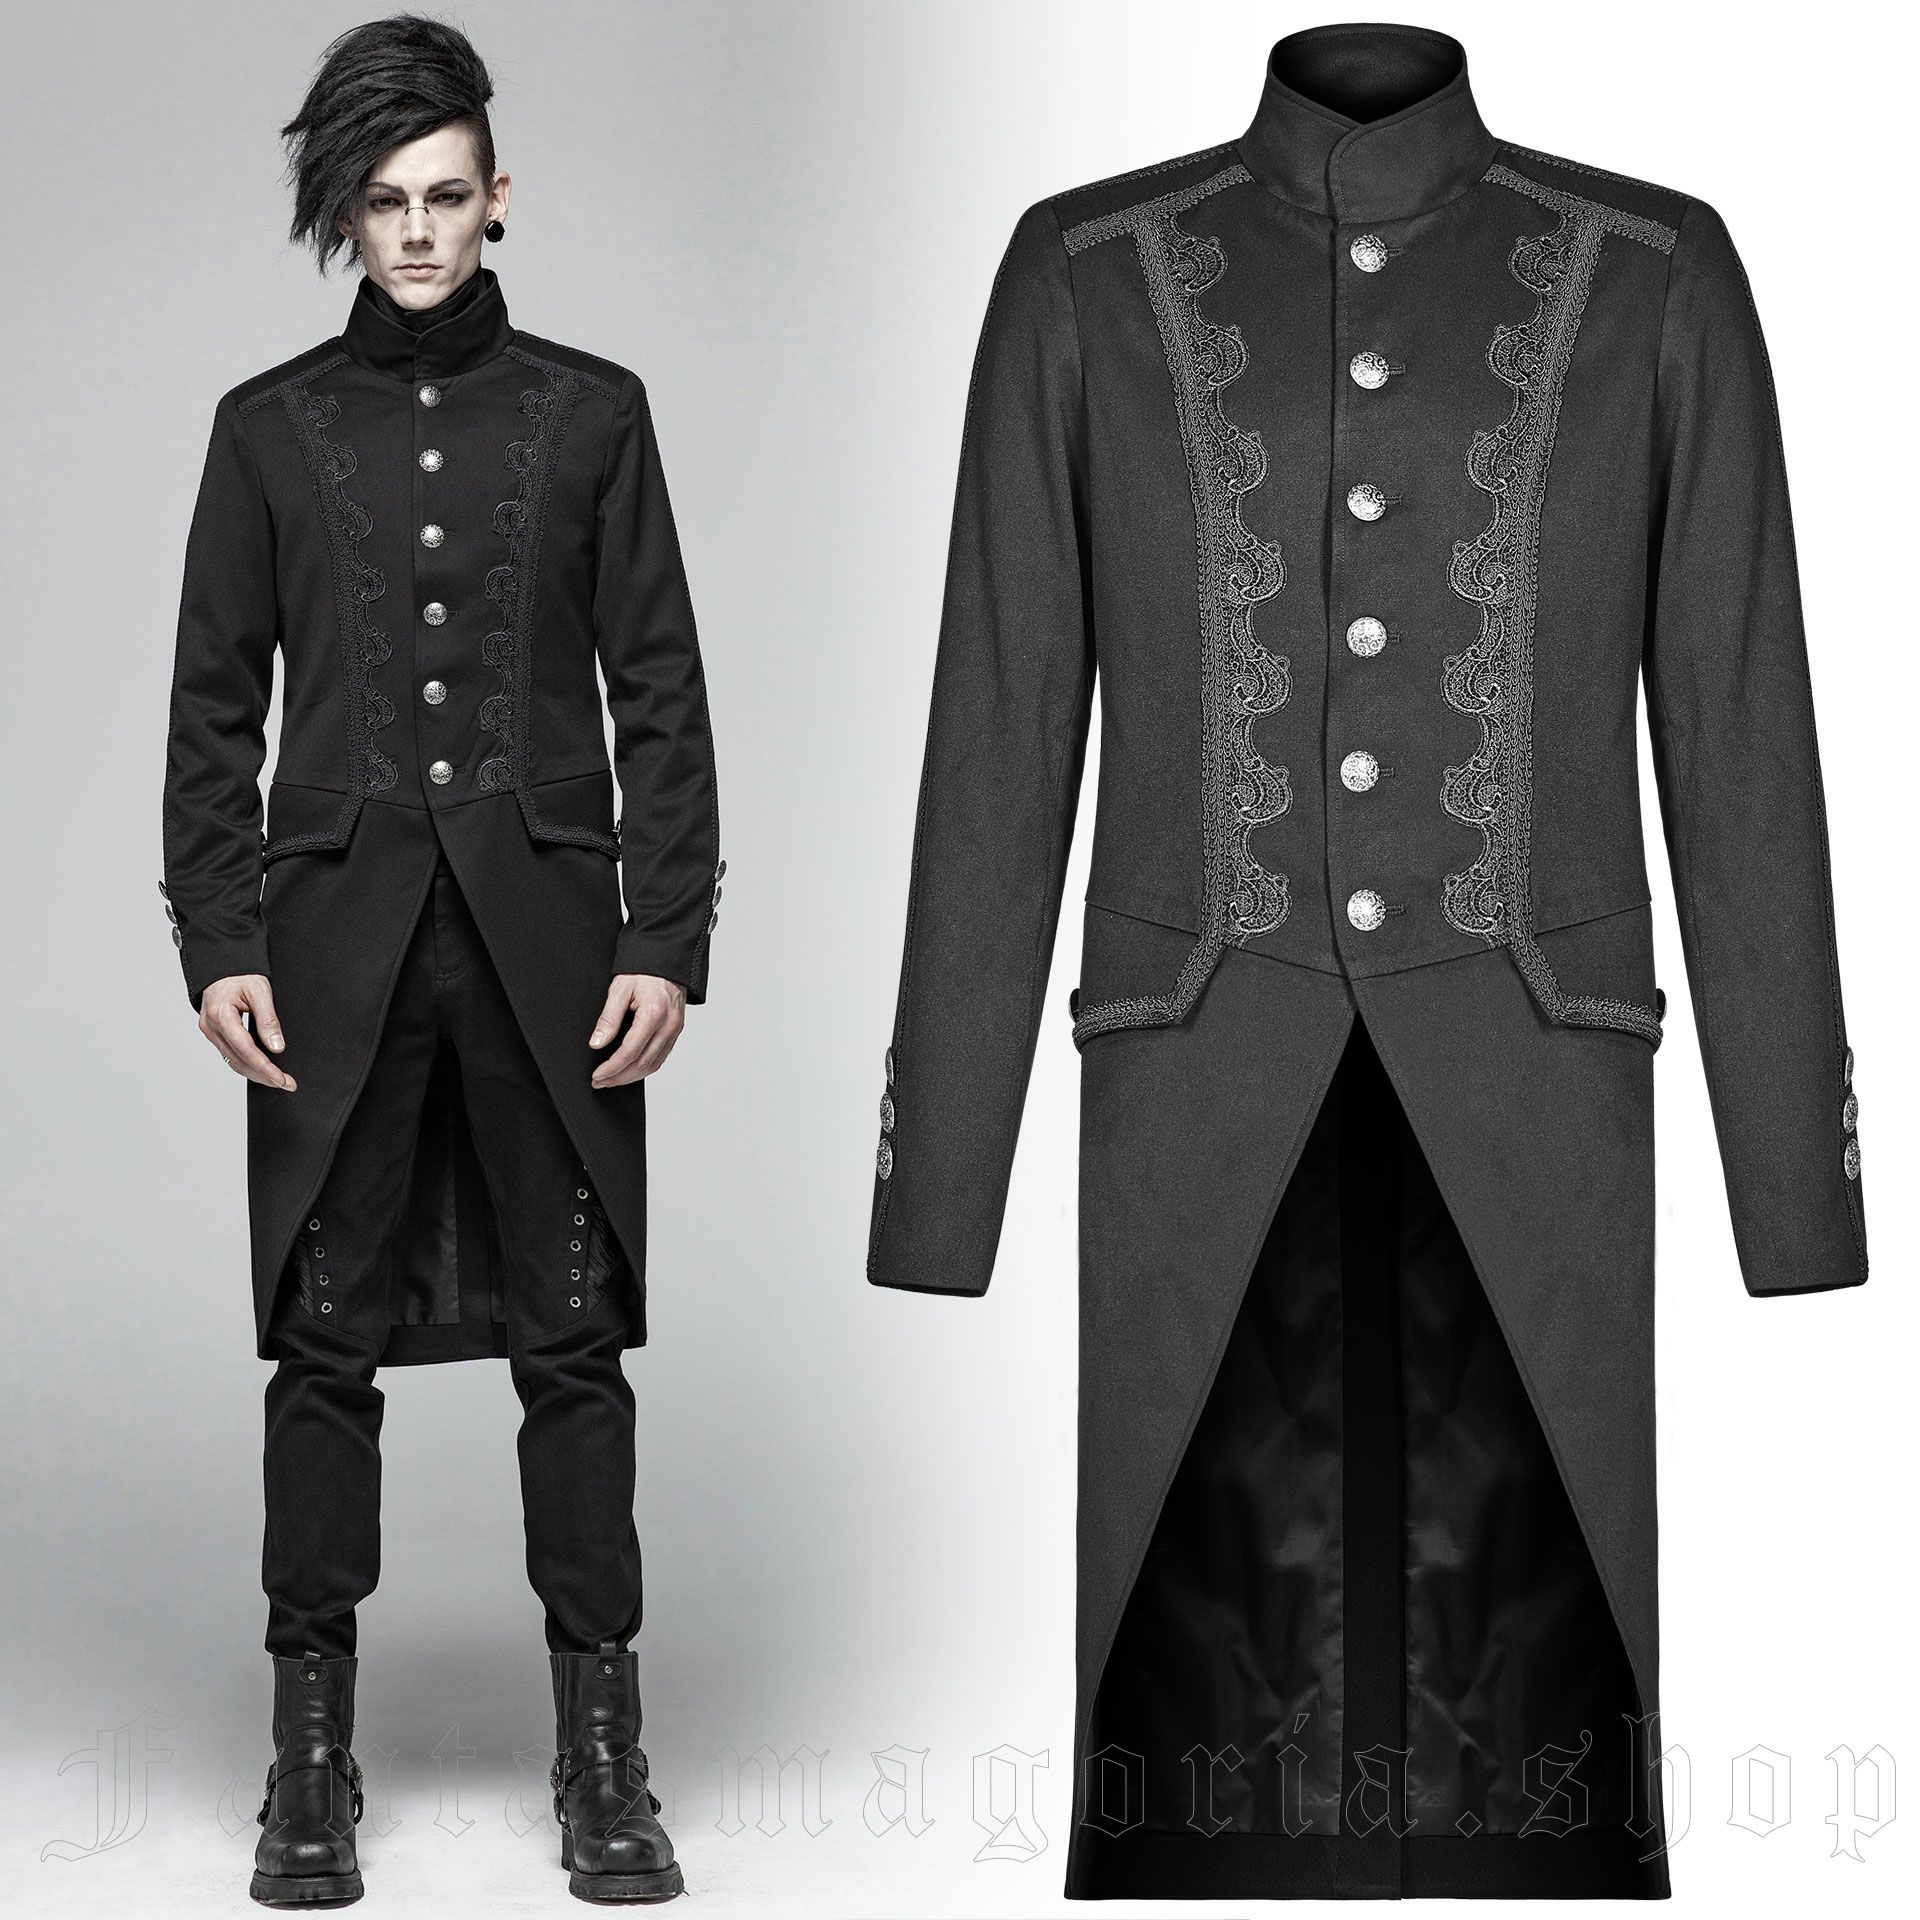 men's Faunus Jacket by PUNK RAVE brand, code: WY-1019